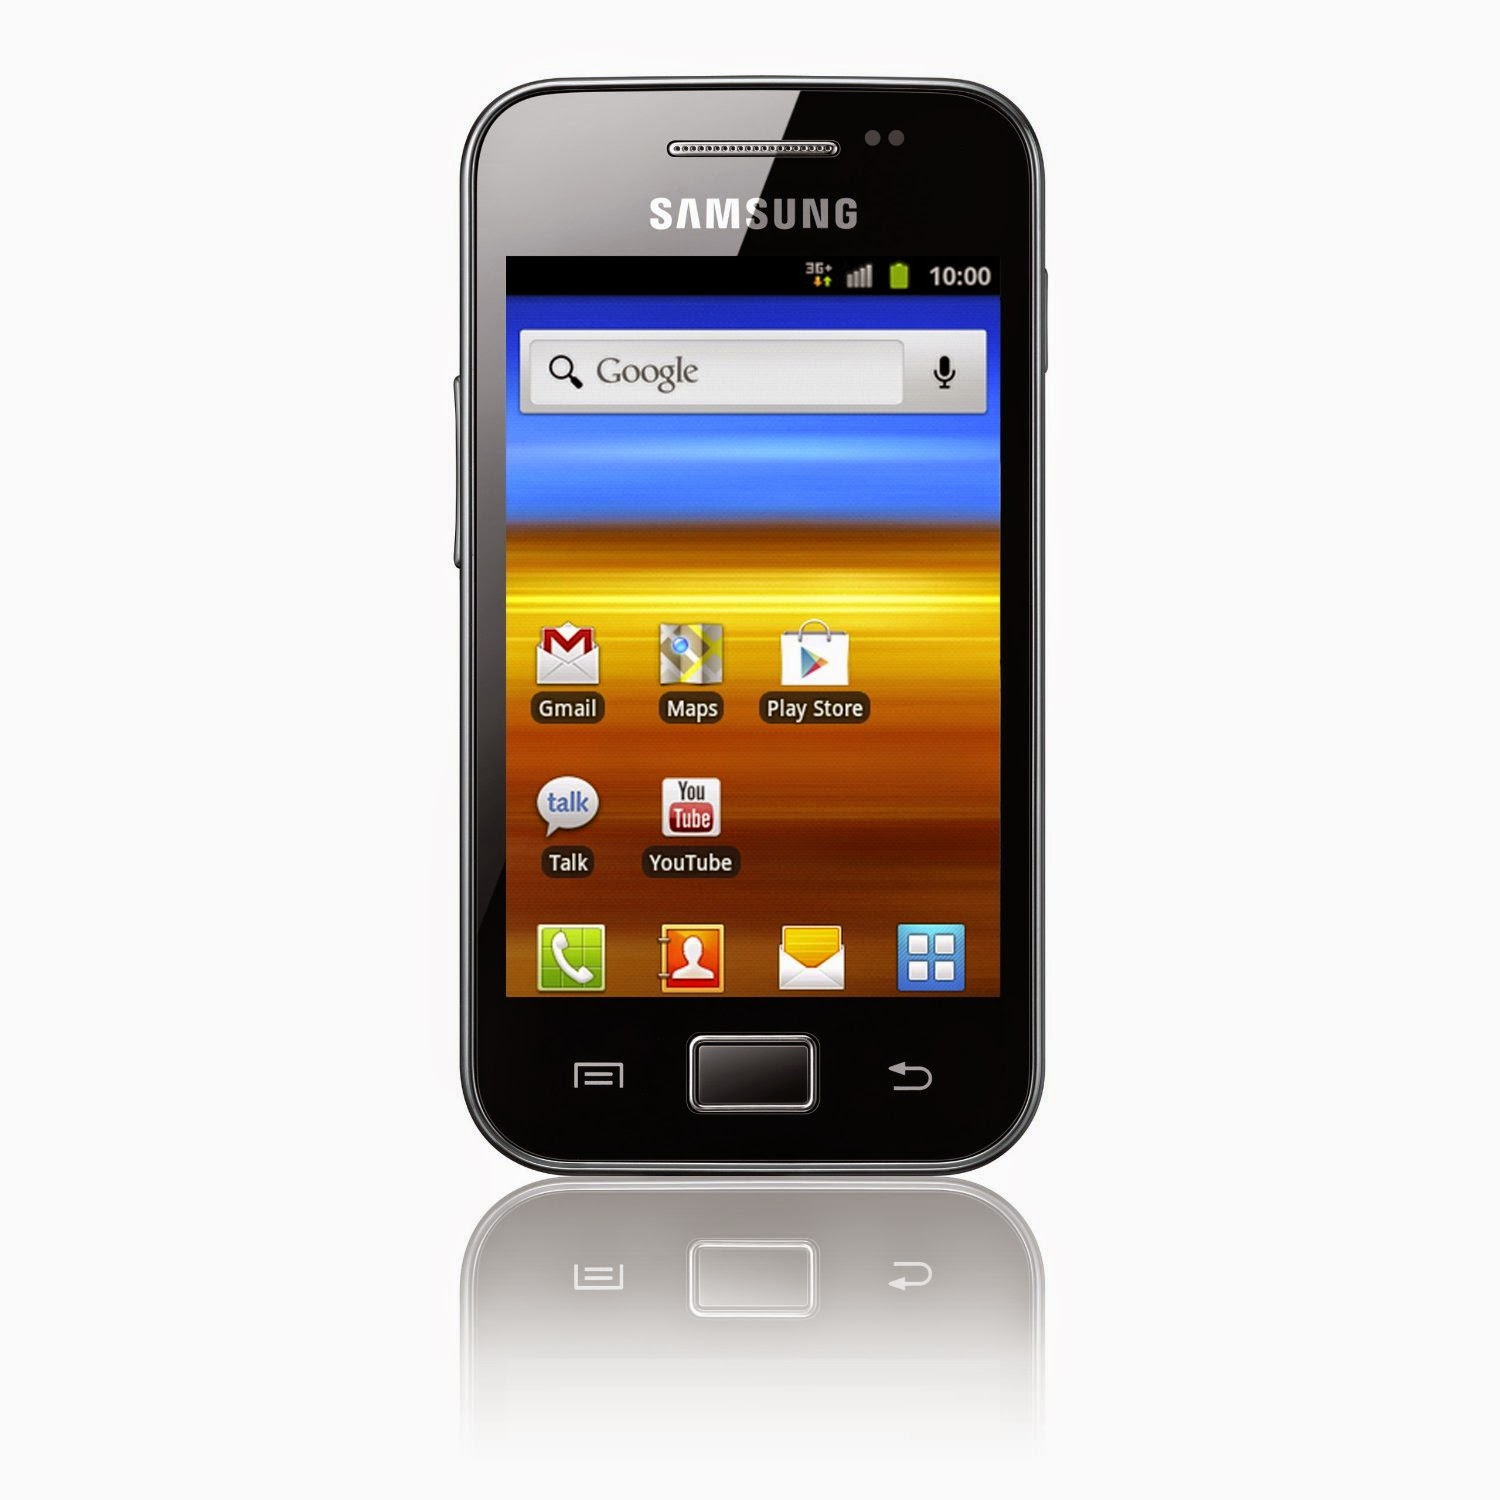 Download Samsung Galaxy Ace GT-S5830 Firmware from here, flash it in your device and enjoy the native Android experience again. The download file contains the USB driver, flash tool, and the Firmware file.